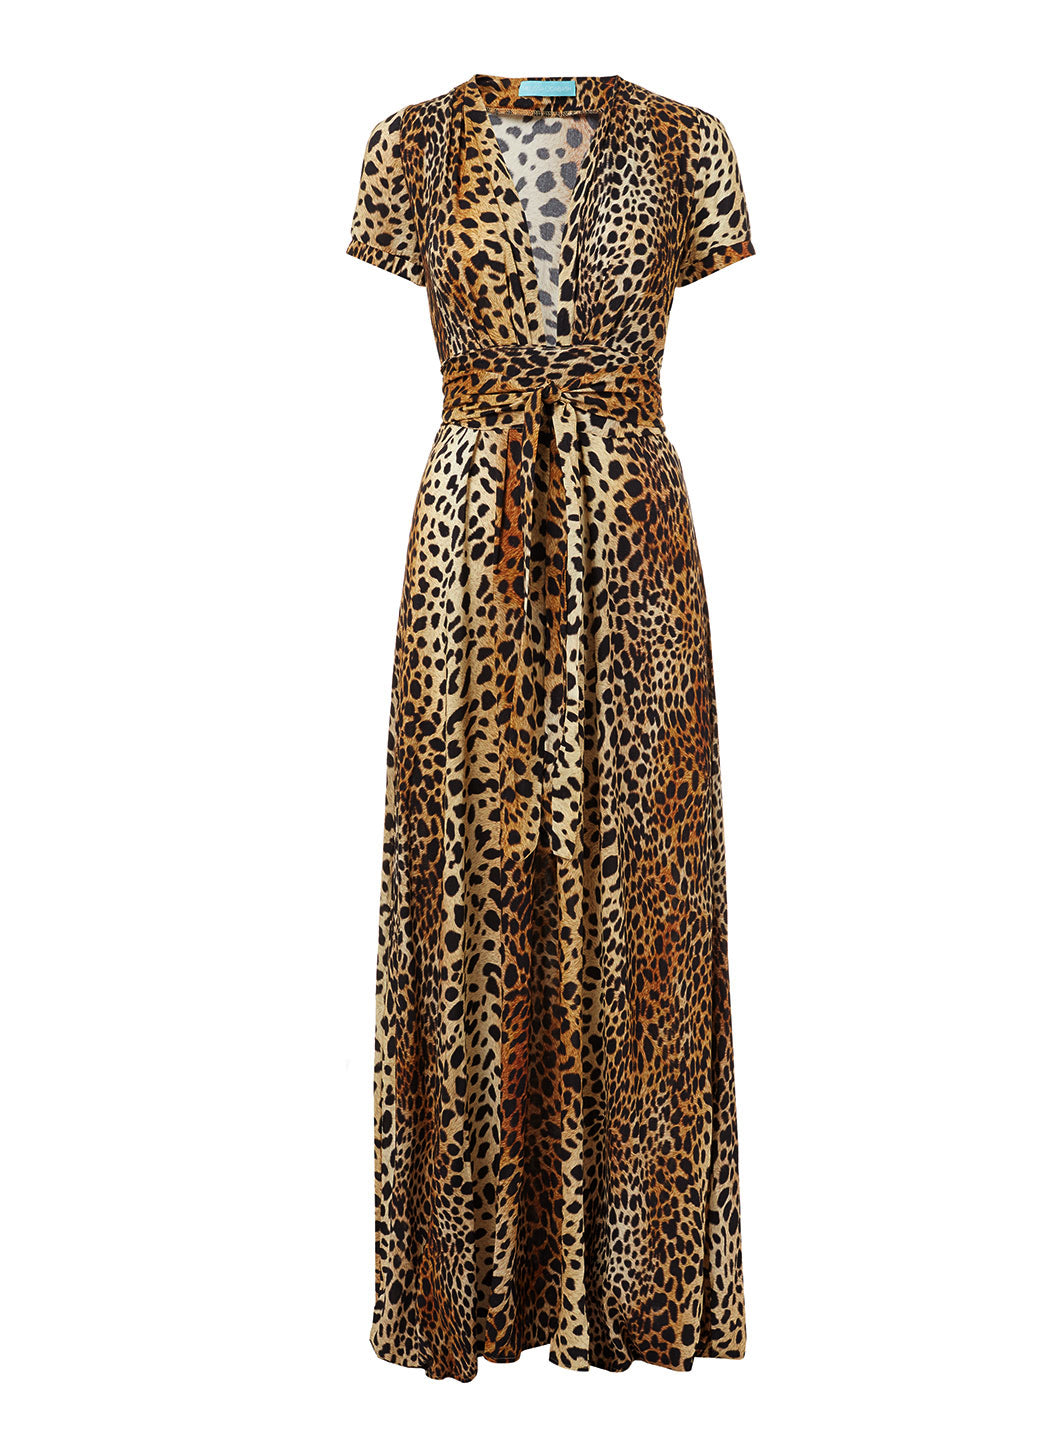 Lou Cheetah V-Neck Short Sleeve Belted Maxi Dress - Melissa Odabash Beachwear